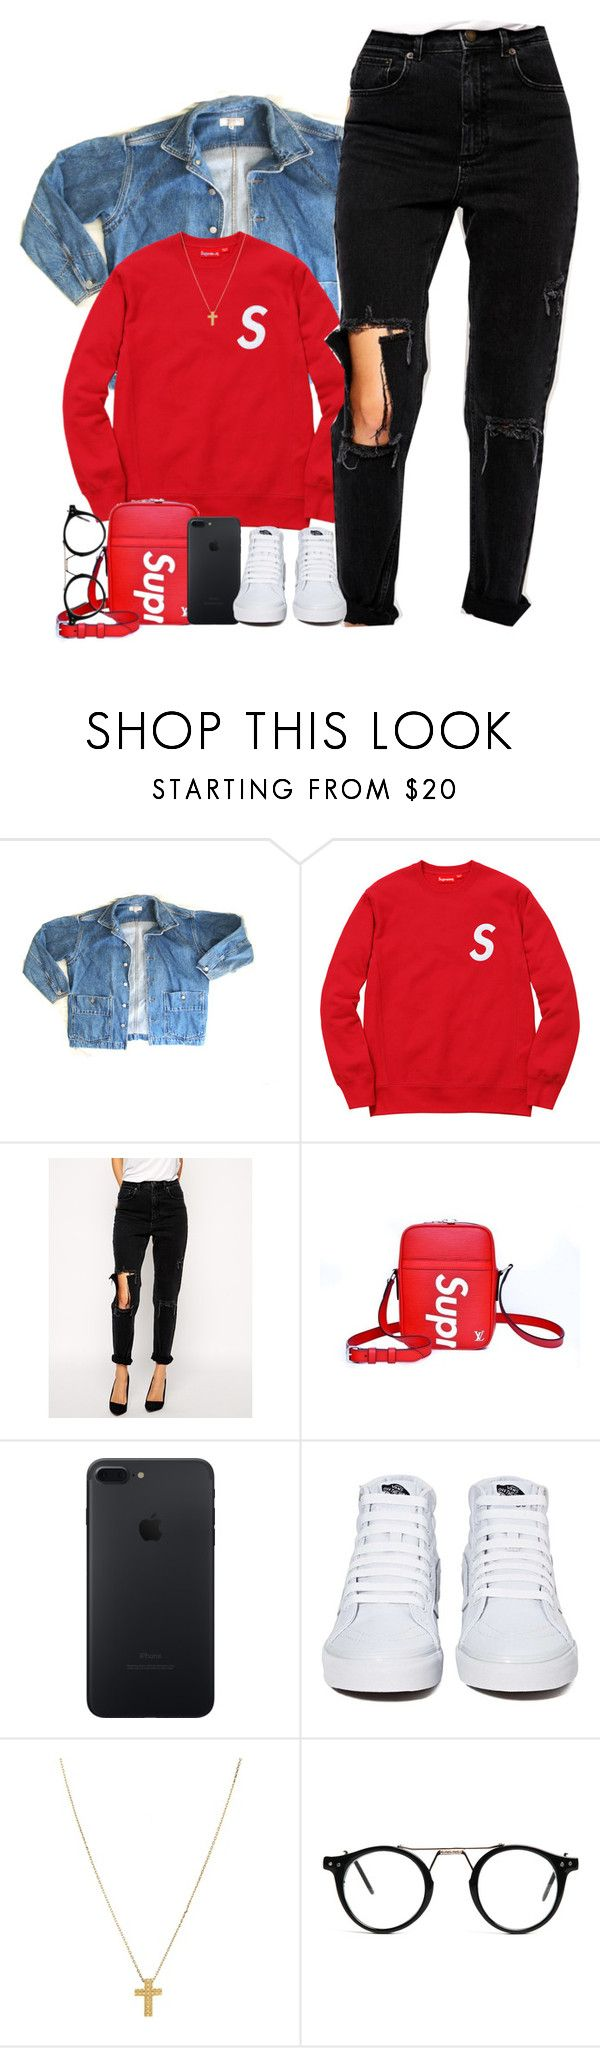 """""""YG- left, right"""" by mxnvt ❤ liked on Polyvore featuring GUESS, ASOS, Louis Vuitton, Vans and Gogo Philip"""